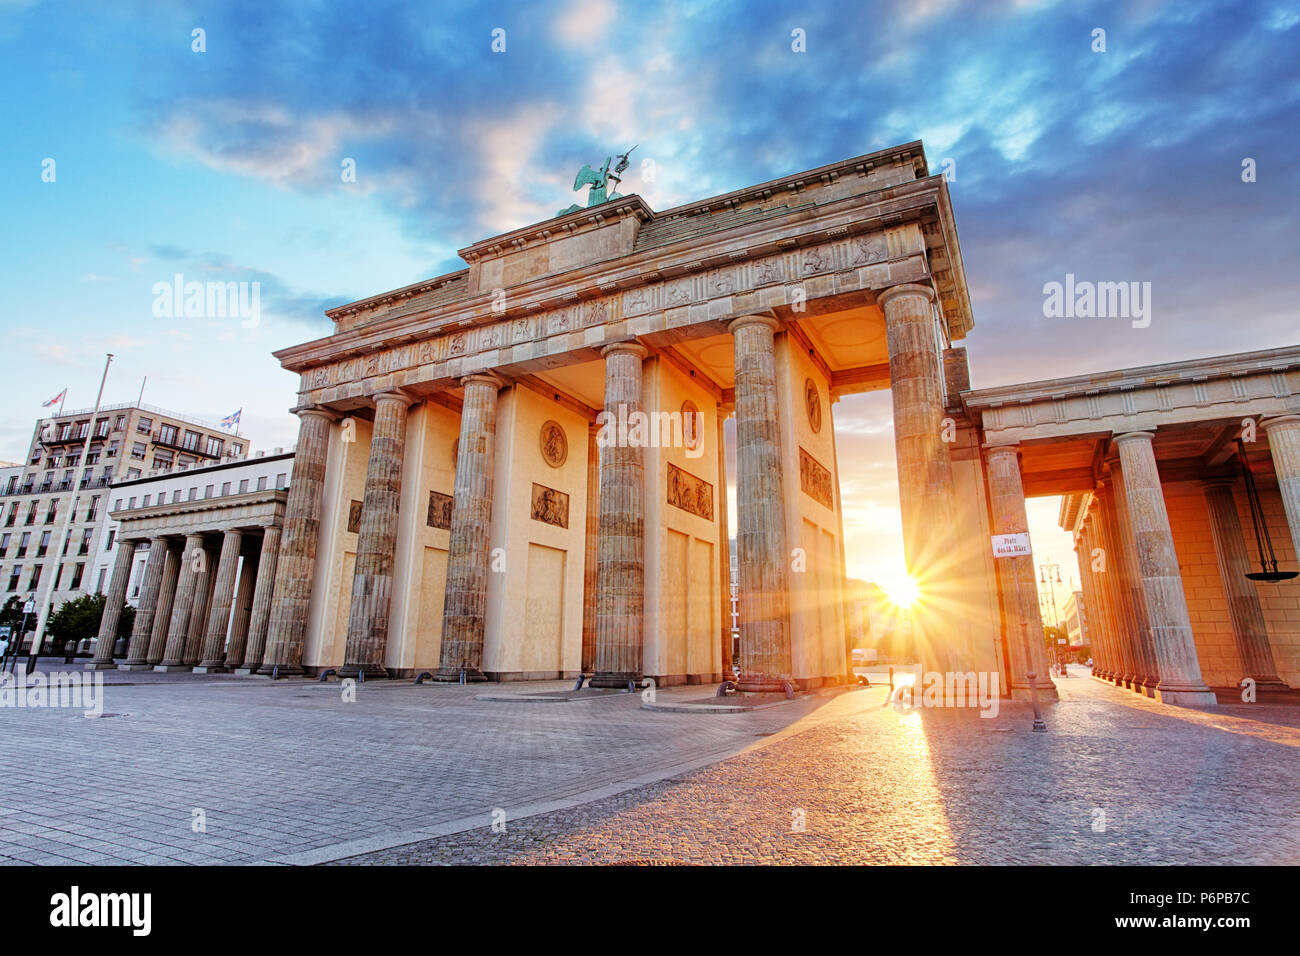 Berlin, Brandenburg gate, Germany - Stock Image